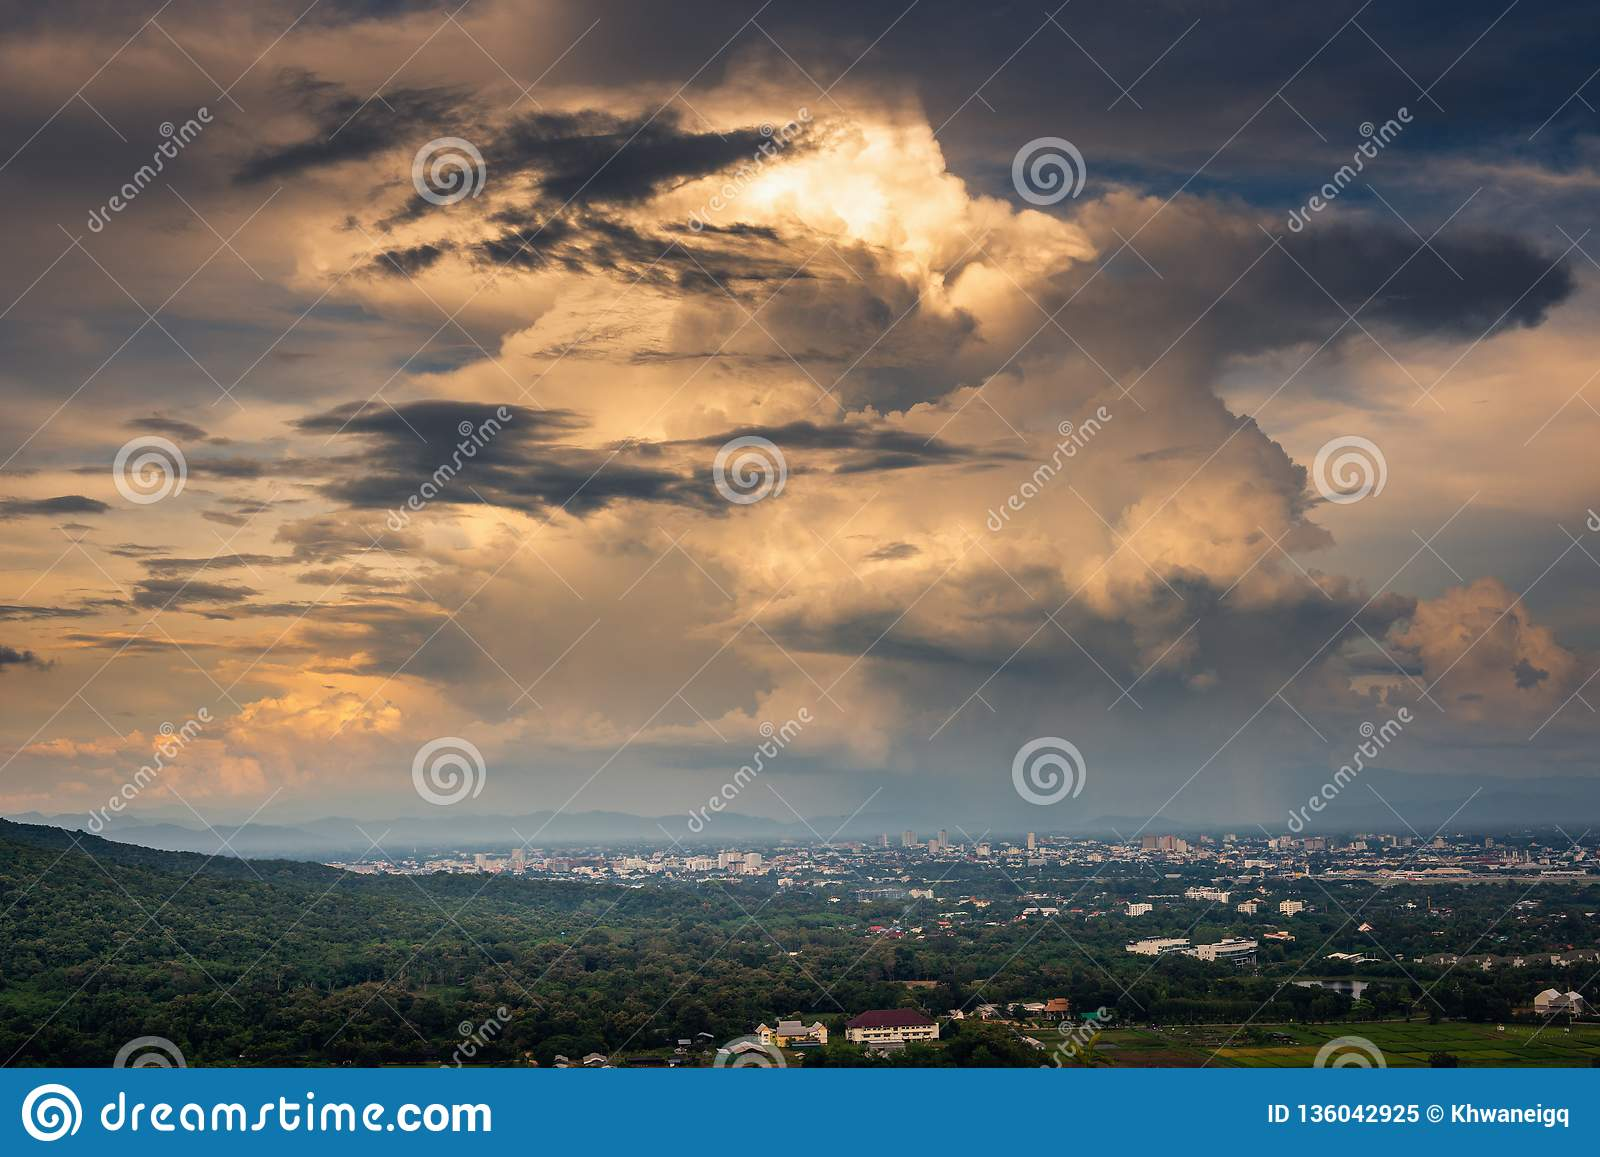 Landscape of dramatic clouds sky over the city at Chiang mai of Thailand., Stormy atmosphere weather situation dramatic at evening